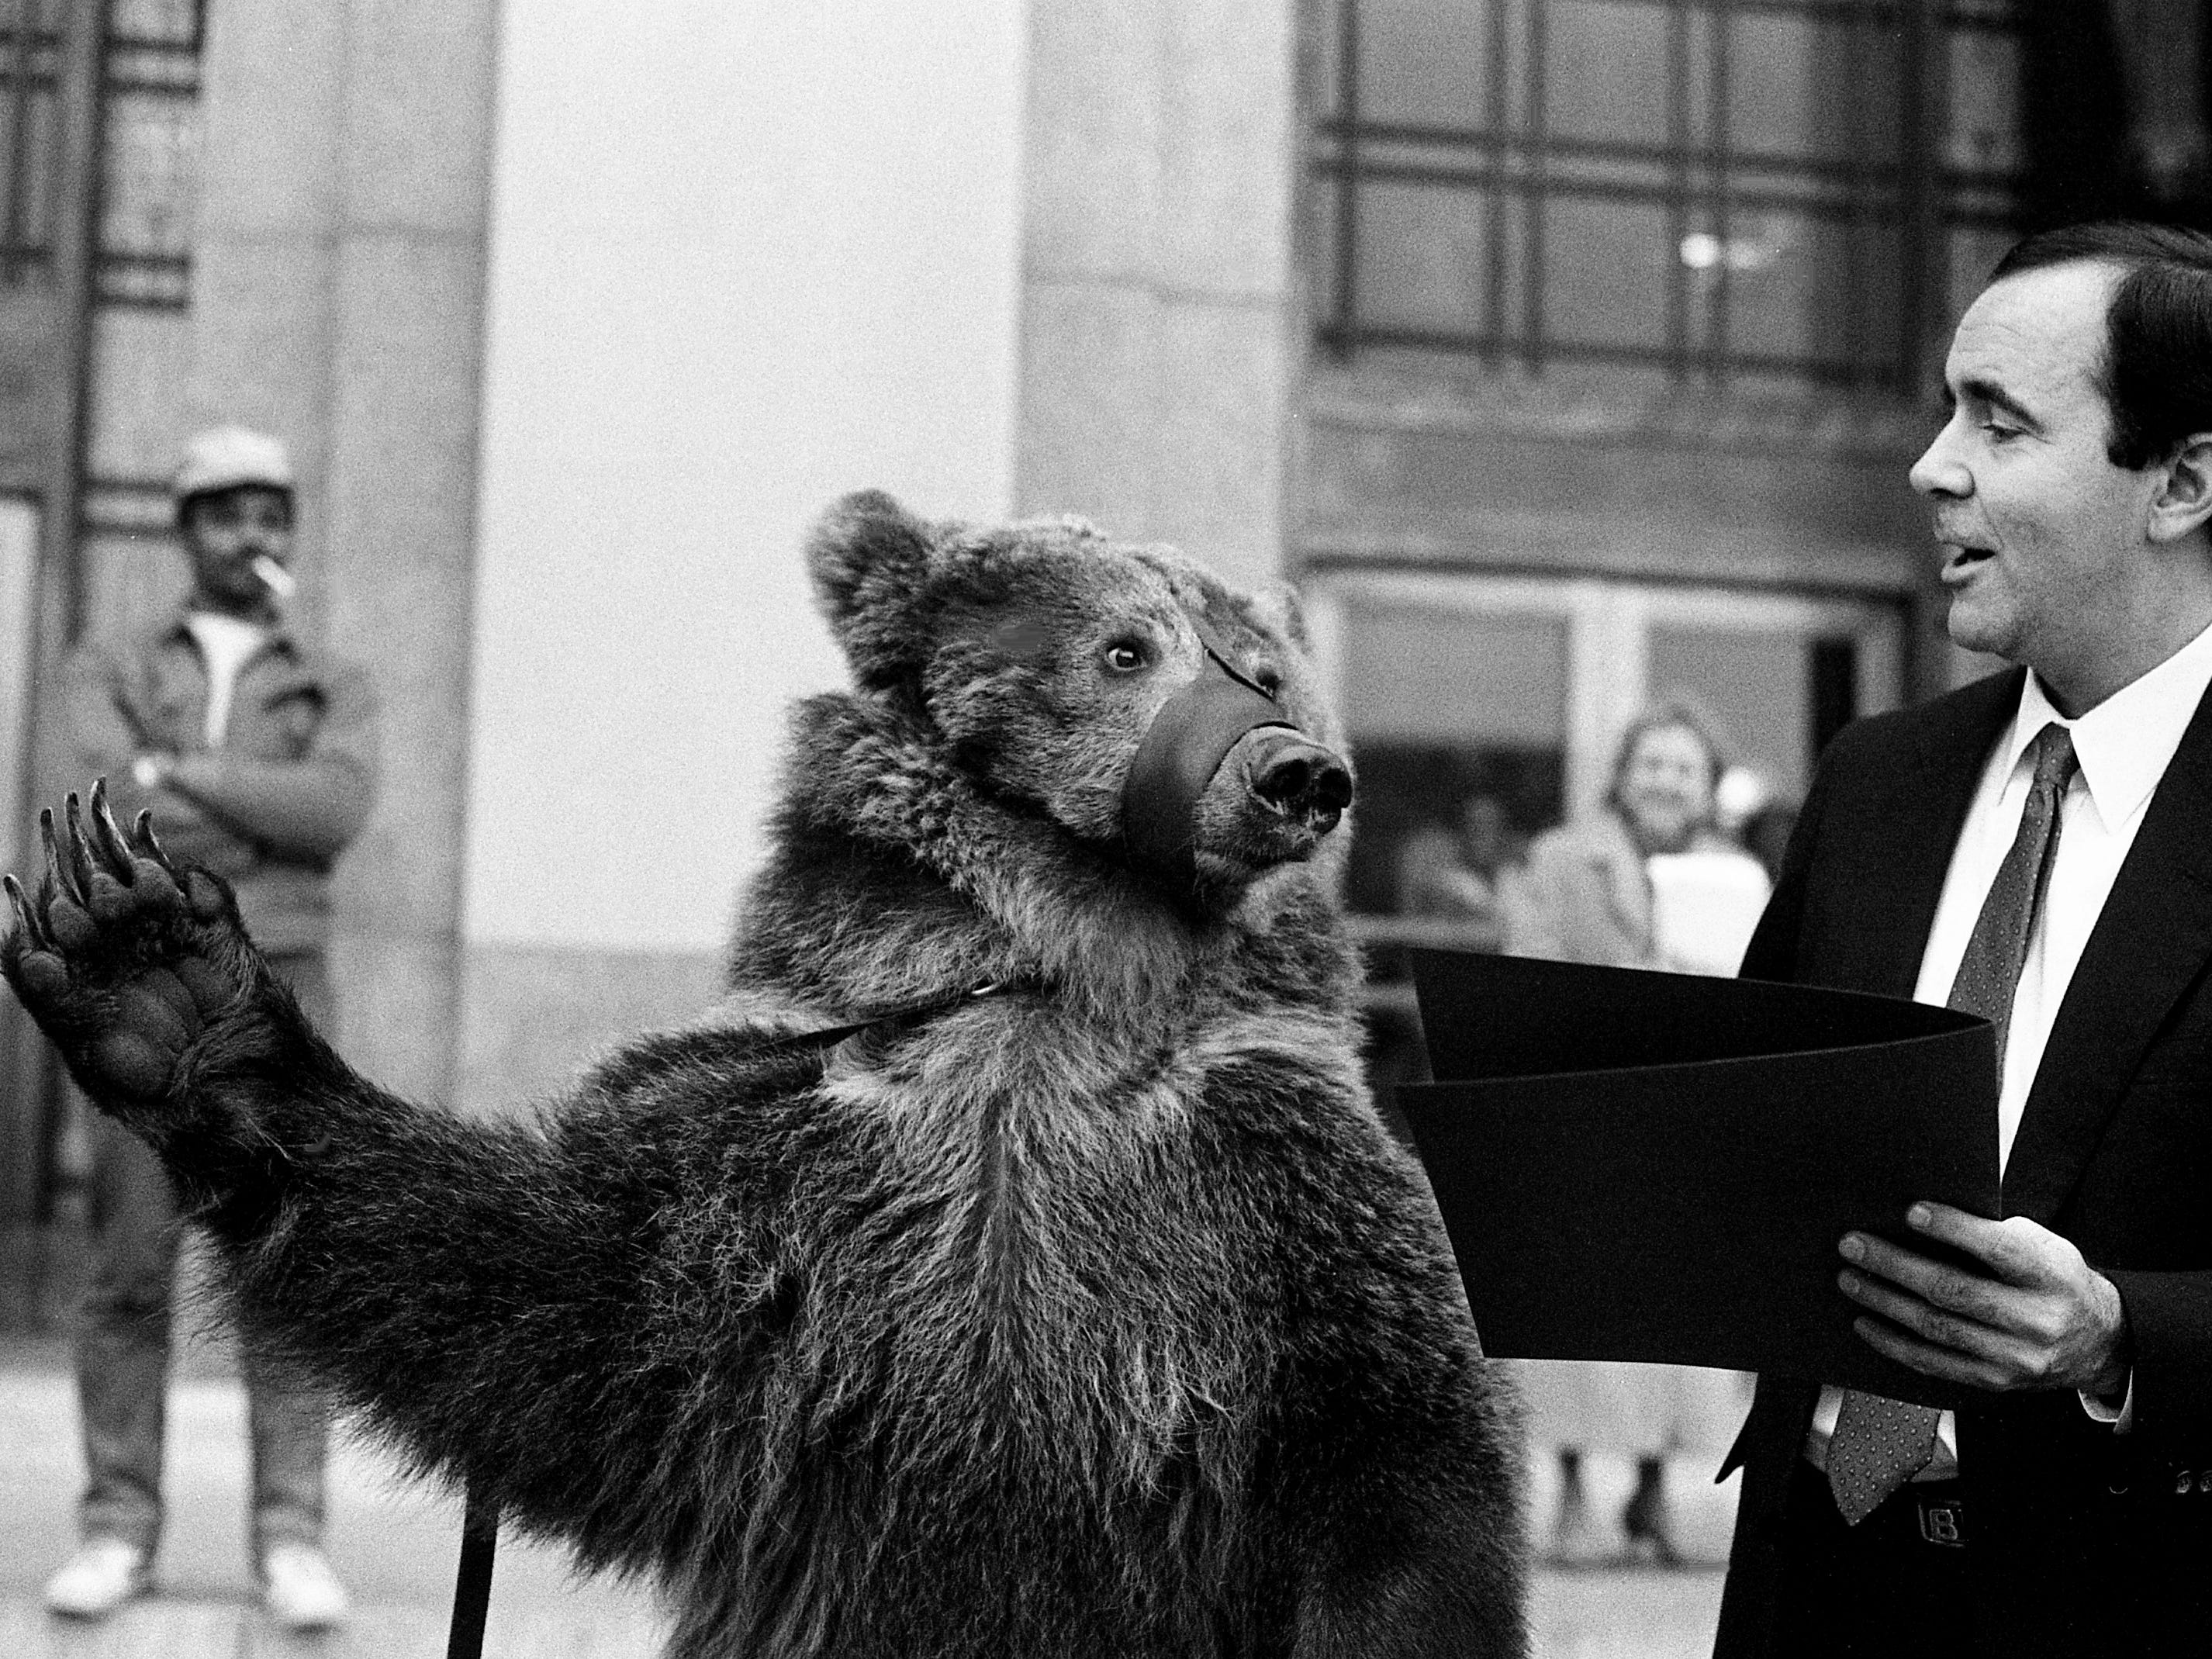 Metro Mayor Bill Boner has been slapped around a lot in the last year, but that was nothing compared to his treatment by Emma the bear, a representative of the Shoney's Circus, as she receives a proclamation from the mayor in front of the Metro Courthouse on Feb. 21, 1989.